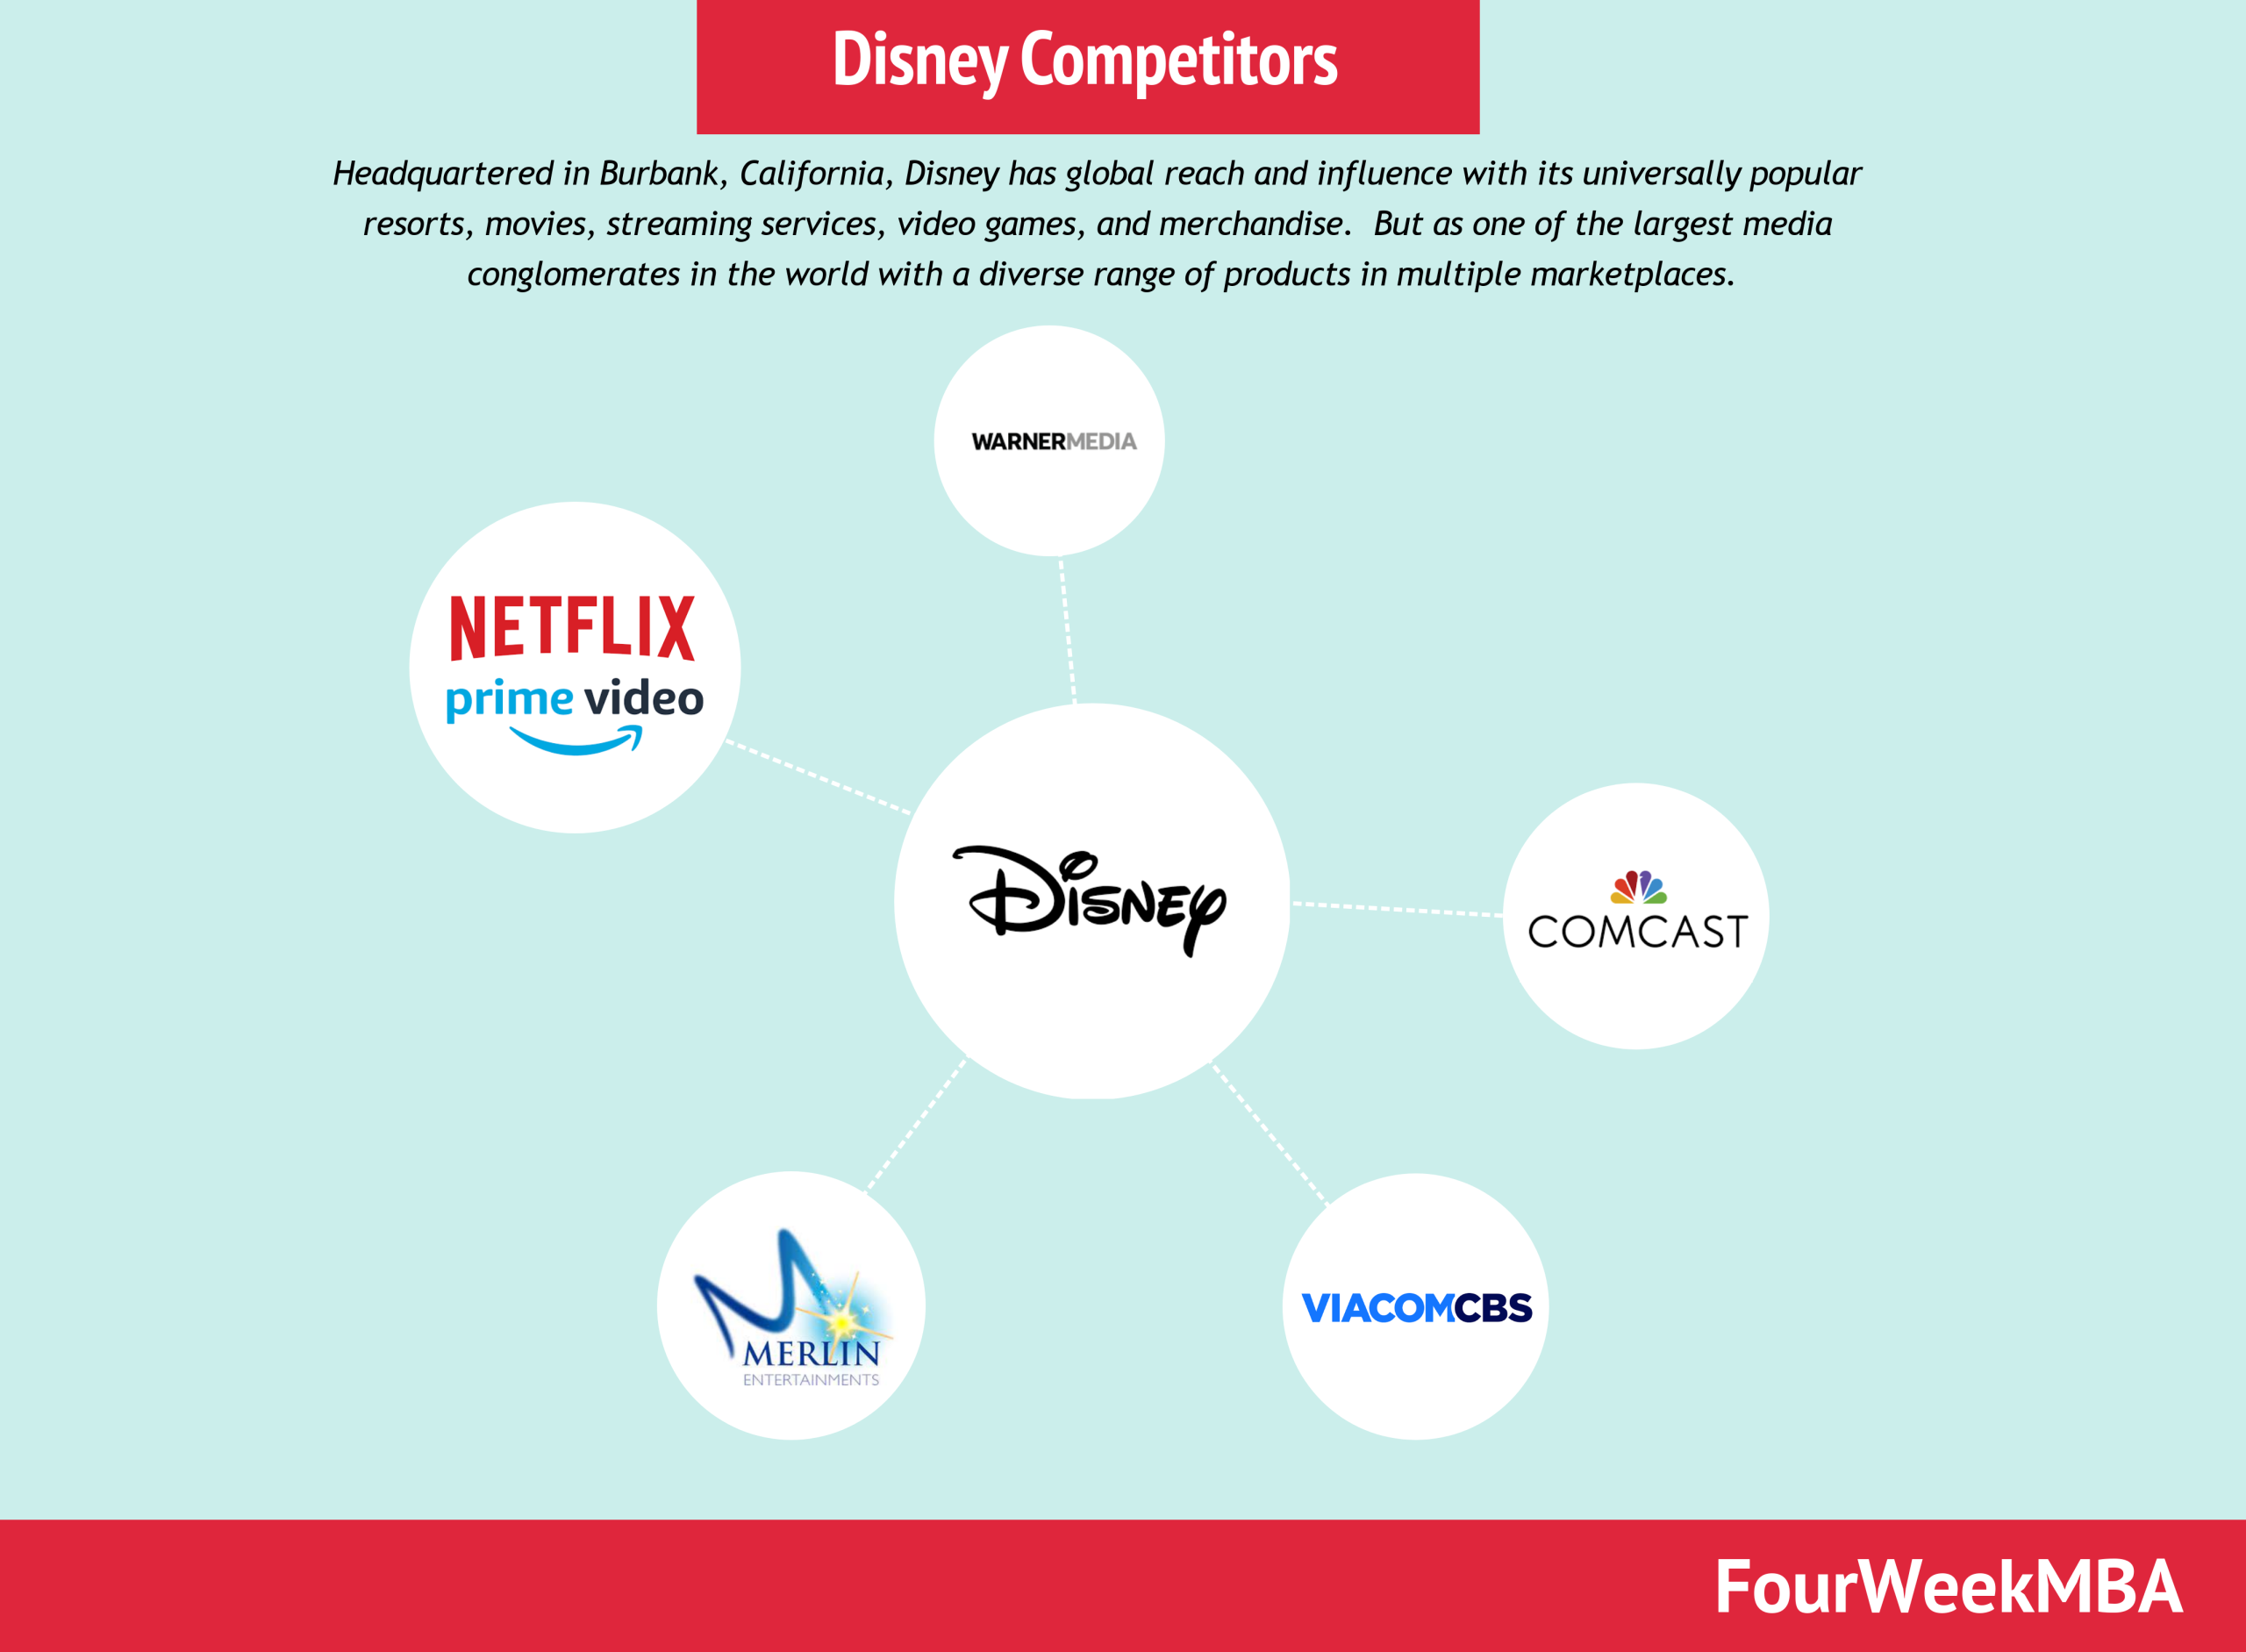 Disney Competitors: Disney Competitors Analysis In A Nutshell